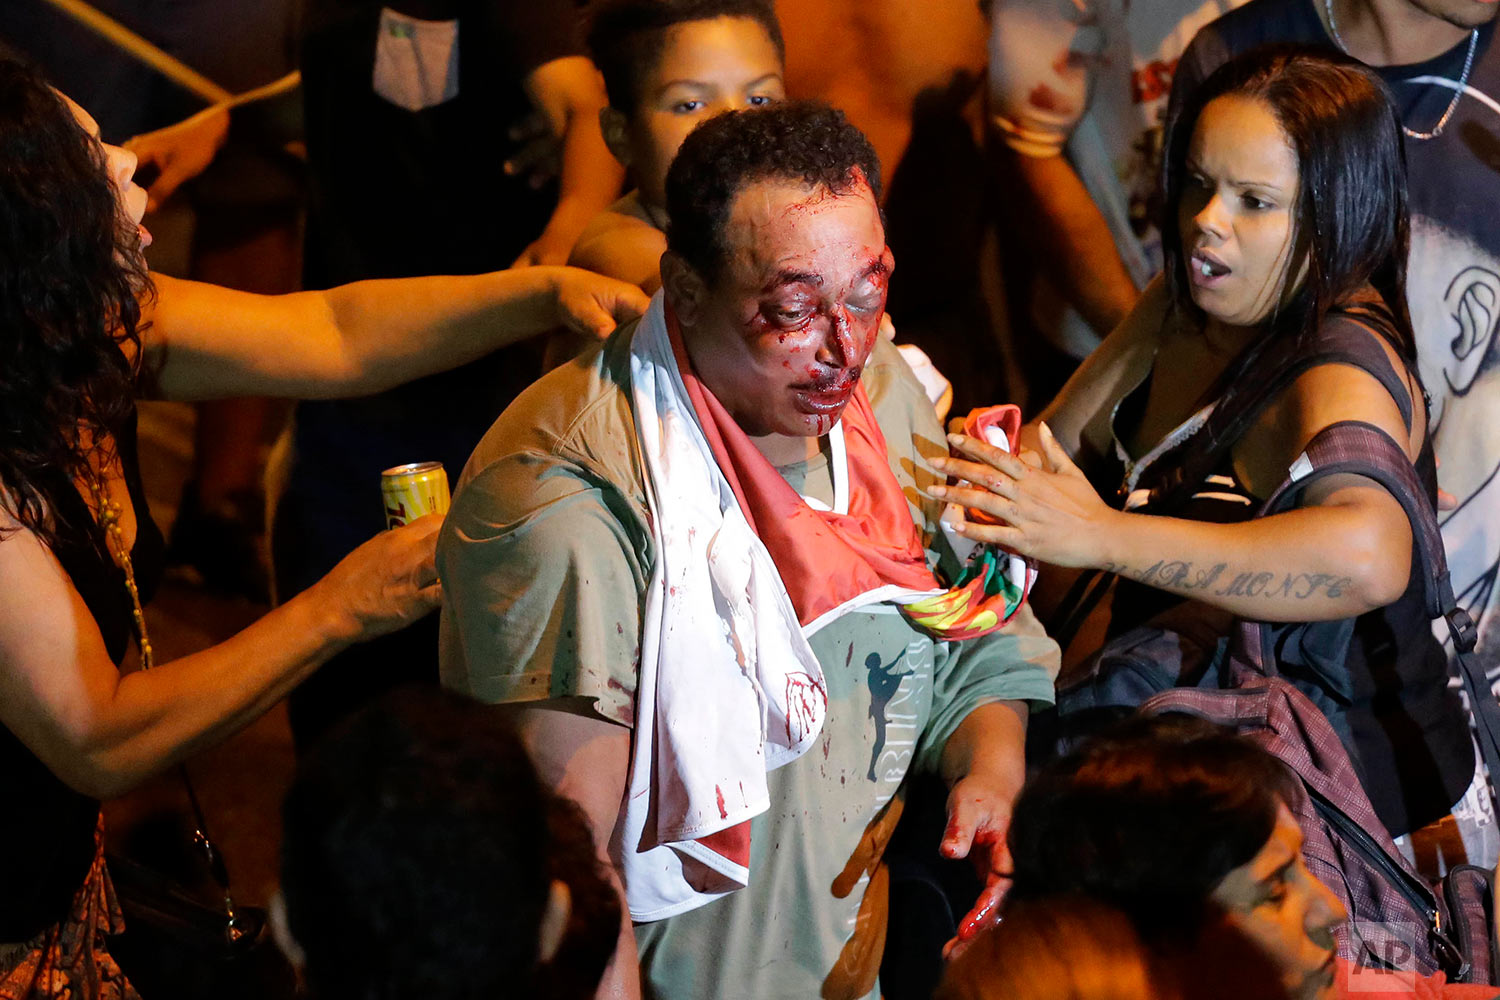 Supporters of Brazil's former President Luiz Inacio Lula da Silva try to help a man who was involved in a brawl outside the metal workers union headquarters where da Silva is hunkered down and his supporters have gathered, in Sao Bernardo do Campo, Brazil, Friday, April 6, 2018. Da Silva defied a 5 p.m. deadline to turn himself into police in the city of Curitiba so he can begin to serve a 12-year sentence on a corruption conviction. (AP Photo/Nelson Antoine)